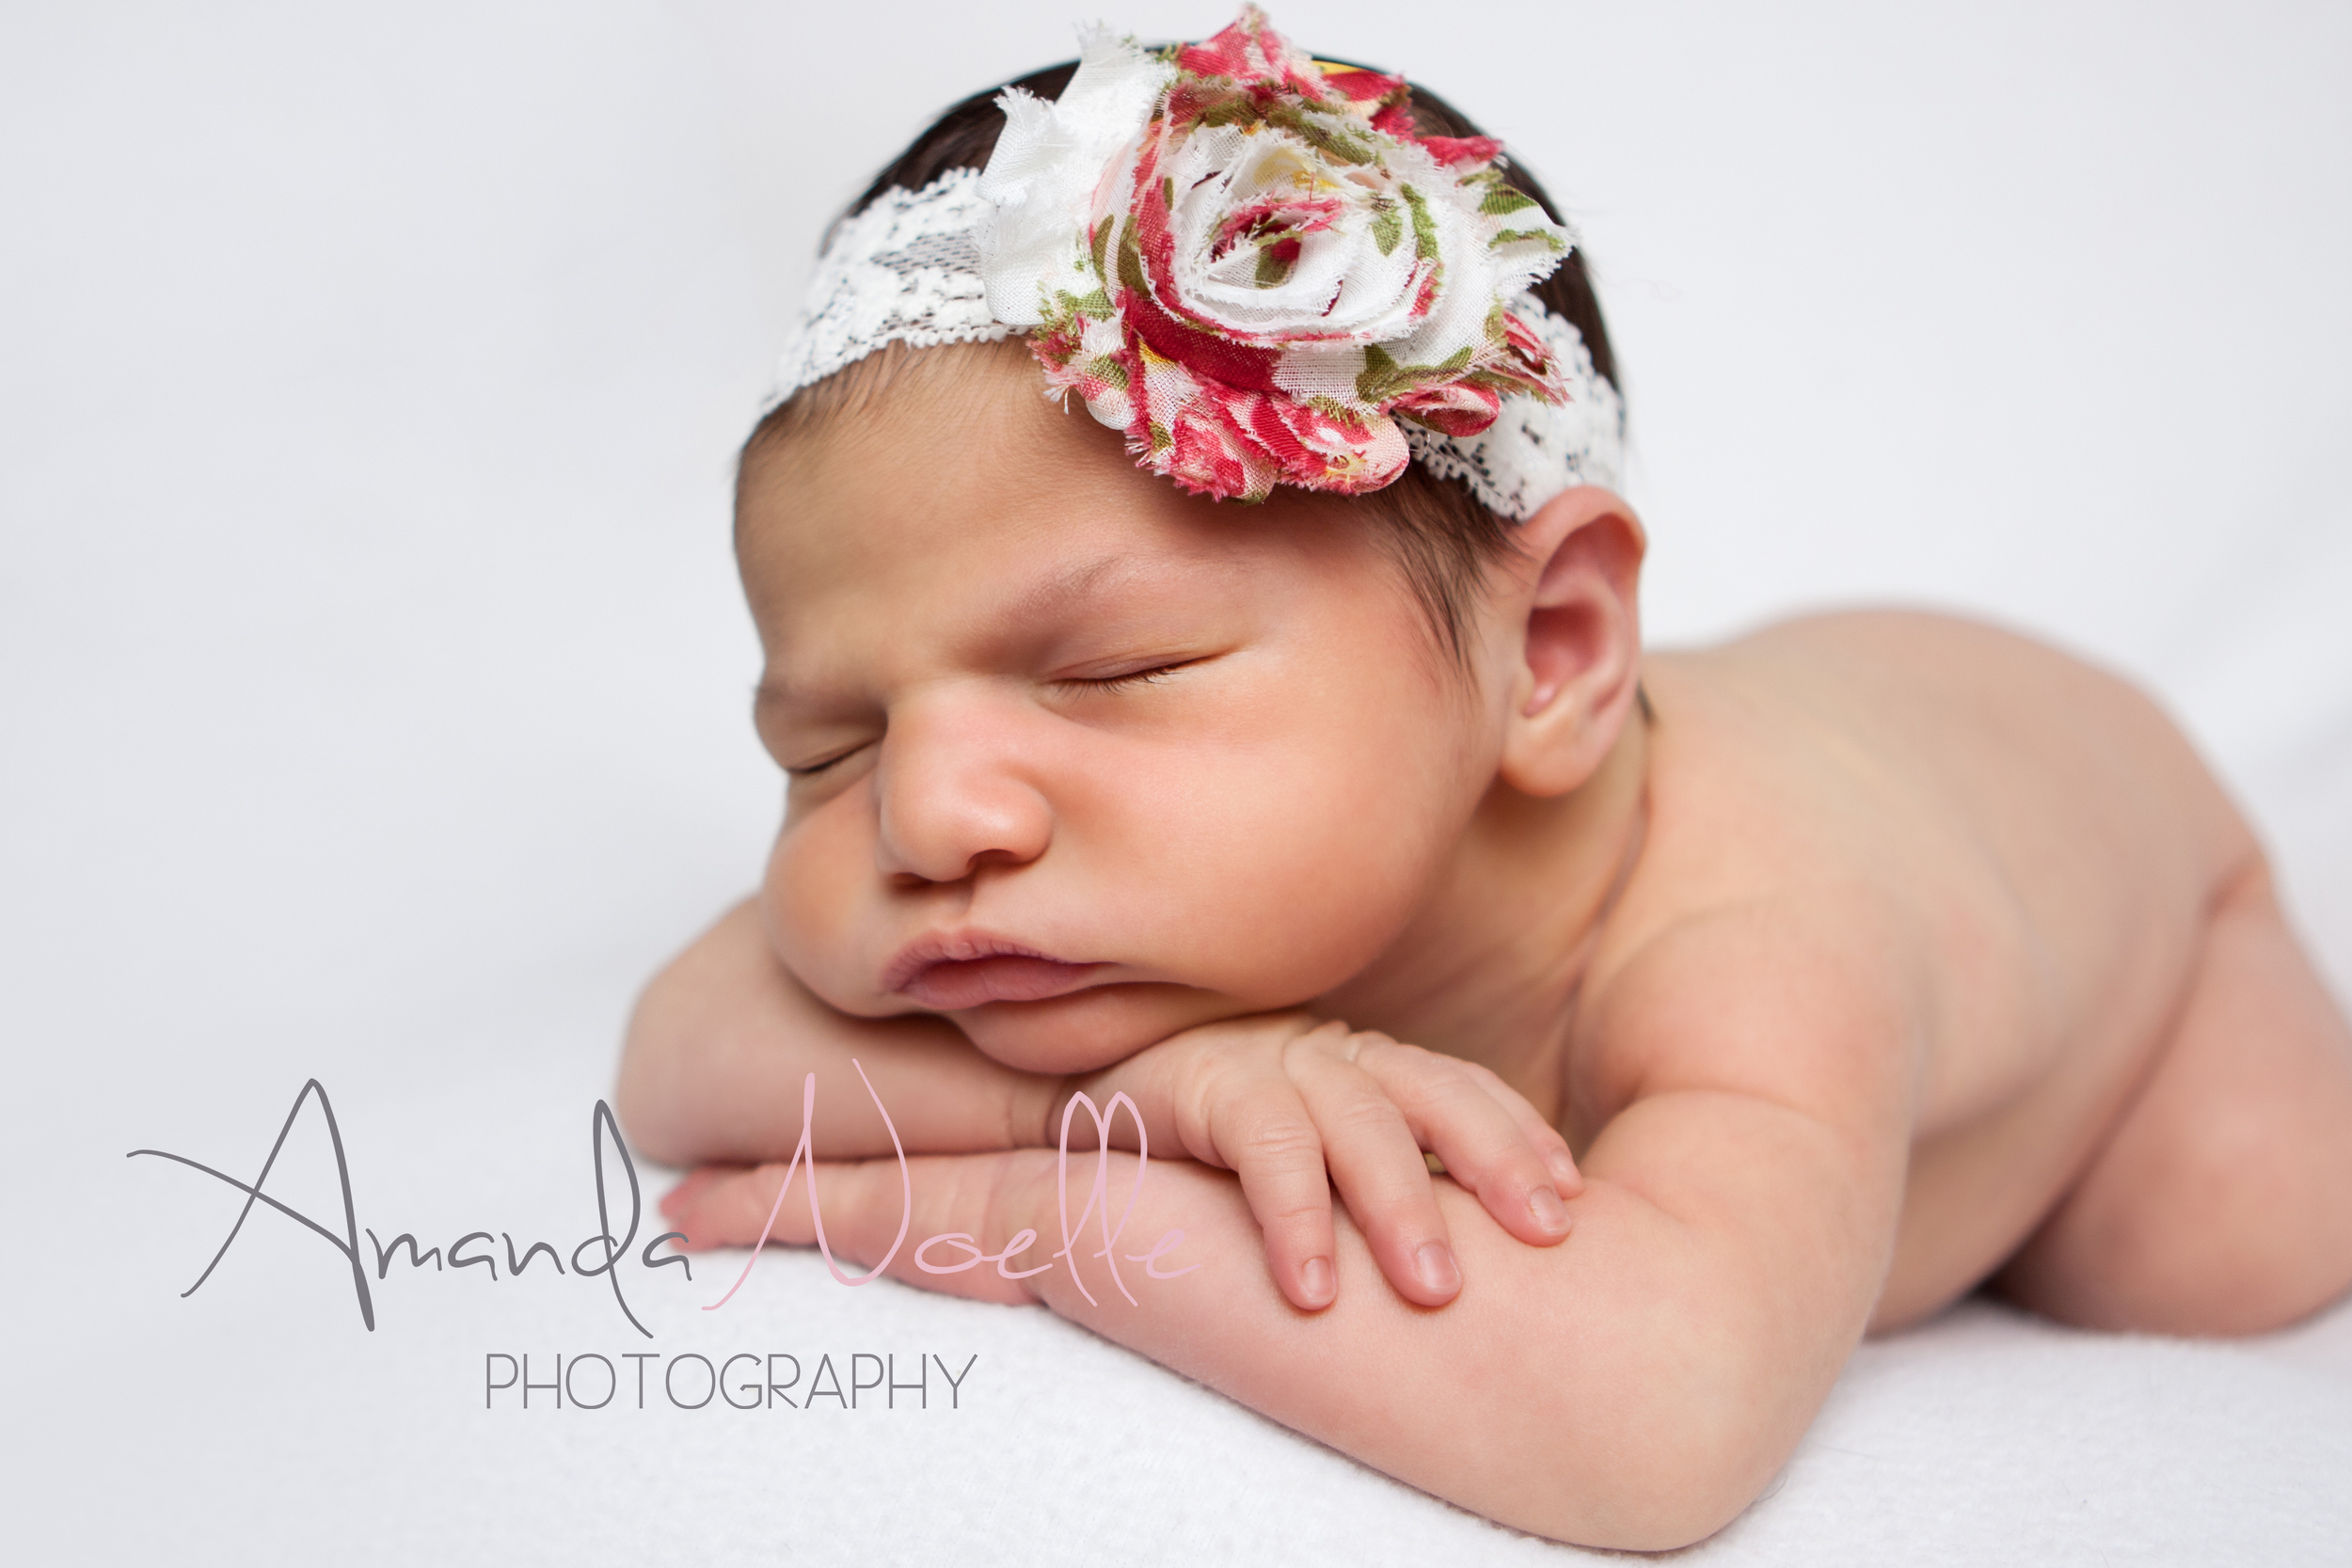 Newborn baby girl, white background fabric, white lace pink shabby chic flower headband, sleeping pose chin on hands on beanbag, by Westchester, New York Newborn Photographer, Amanda Noelle Photography